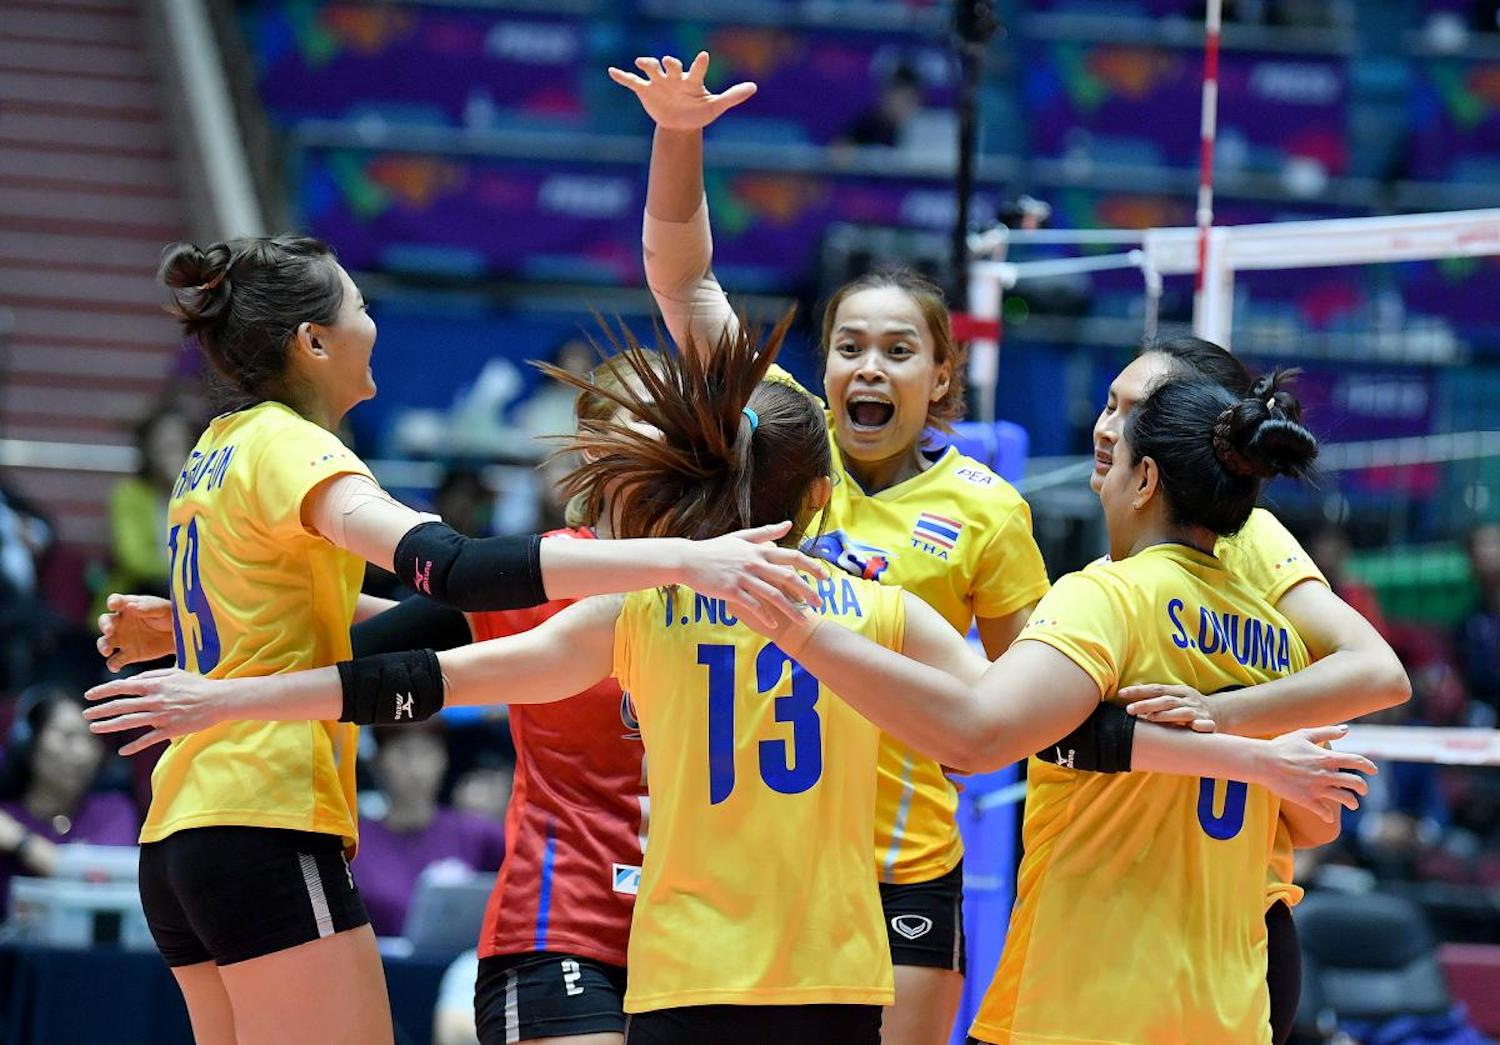 Thai team members celebrate after their 3-1 victory over China at the Jamsil Indoor Stadium in Seoul on Saturday. (AVF Photo)